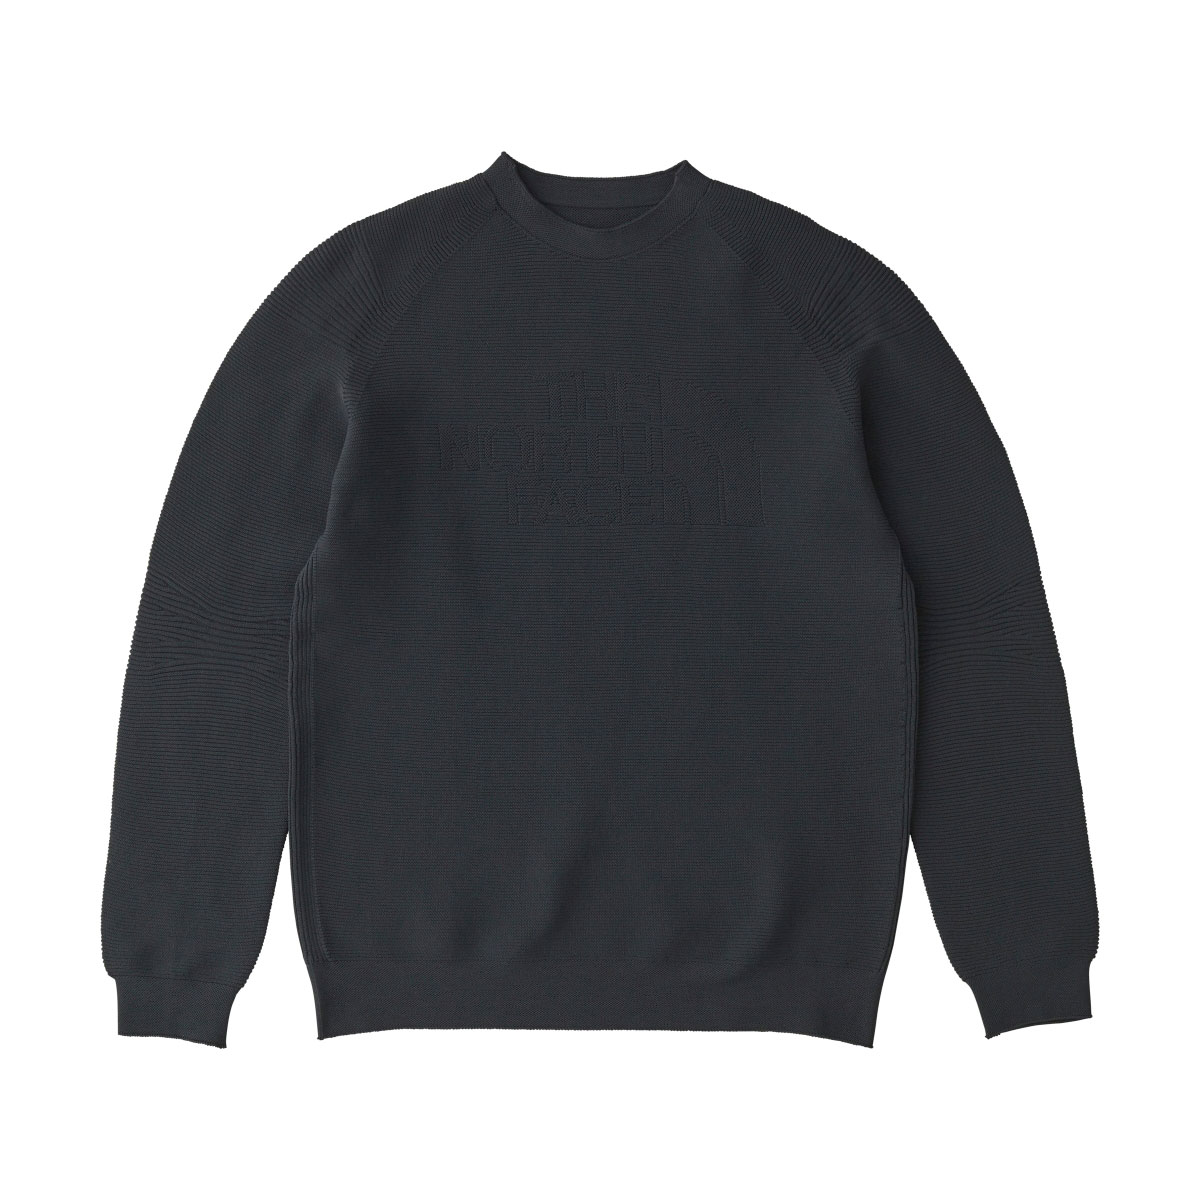 46a22731b THE NORTH FACE L/S GLOBEFIT CREW (the North Face L/S glove fitting crew)  (black) 18SP-I